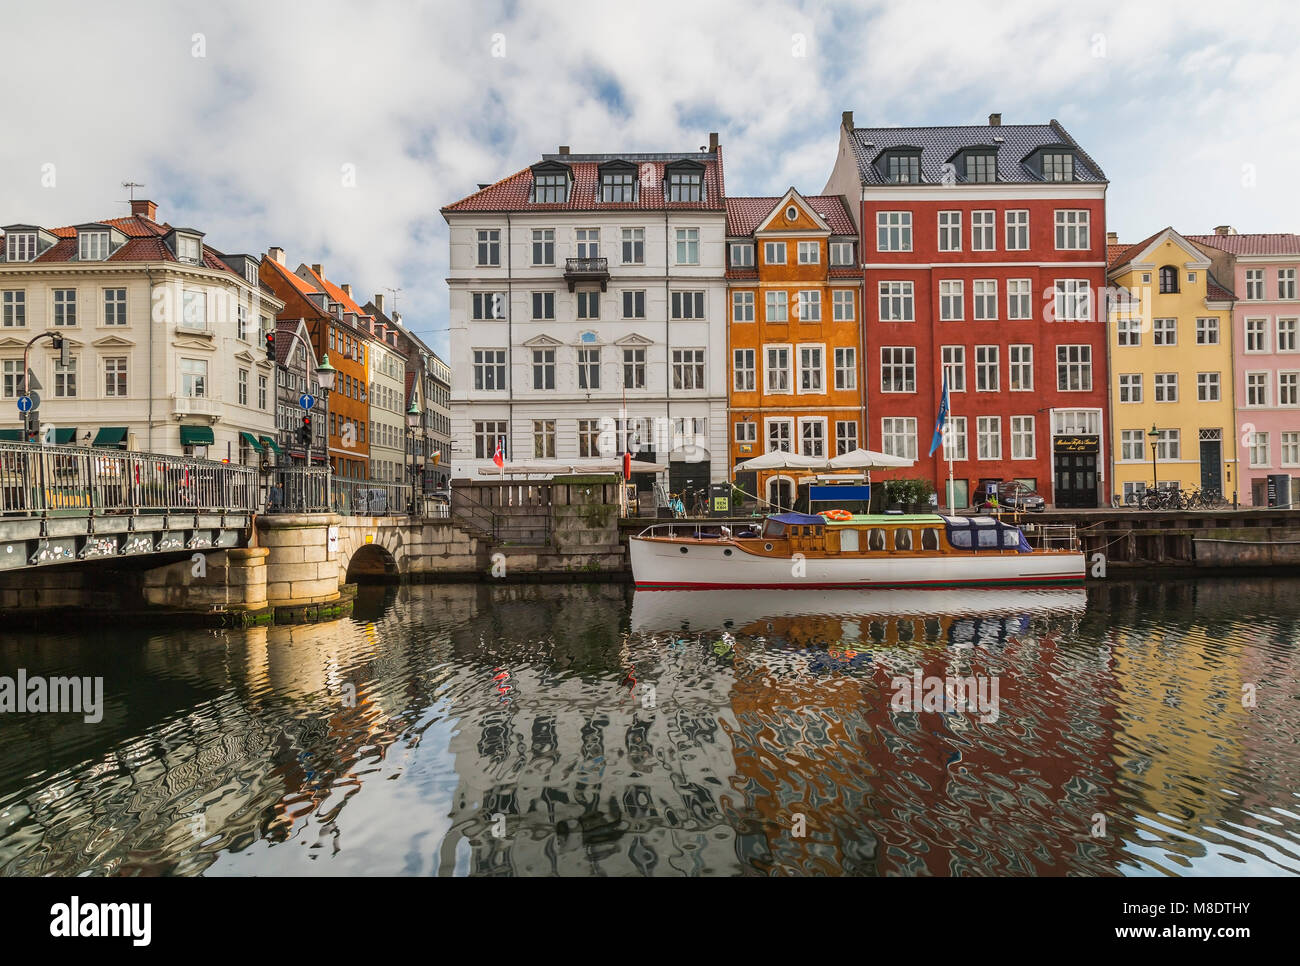 Moored boat and bridge with colourful 17th century town houses on Nyhavn canal, Copenhagen, Denmark - Stock Image